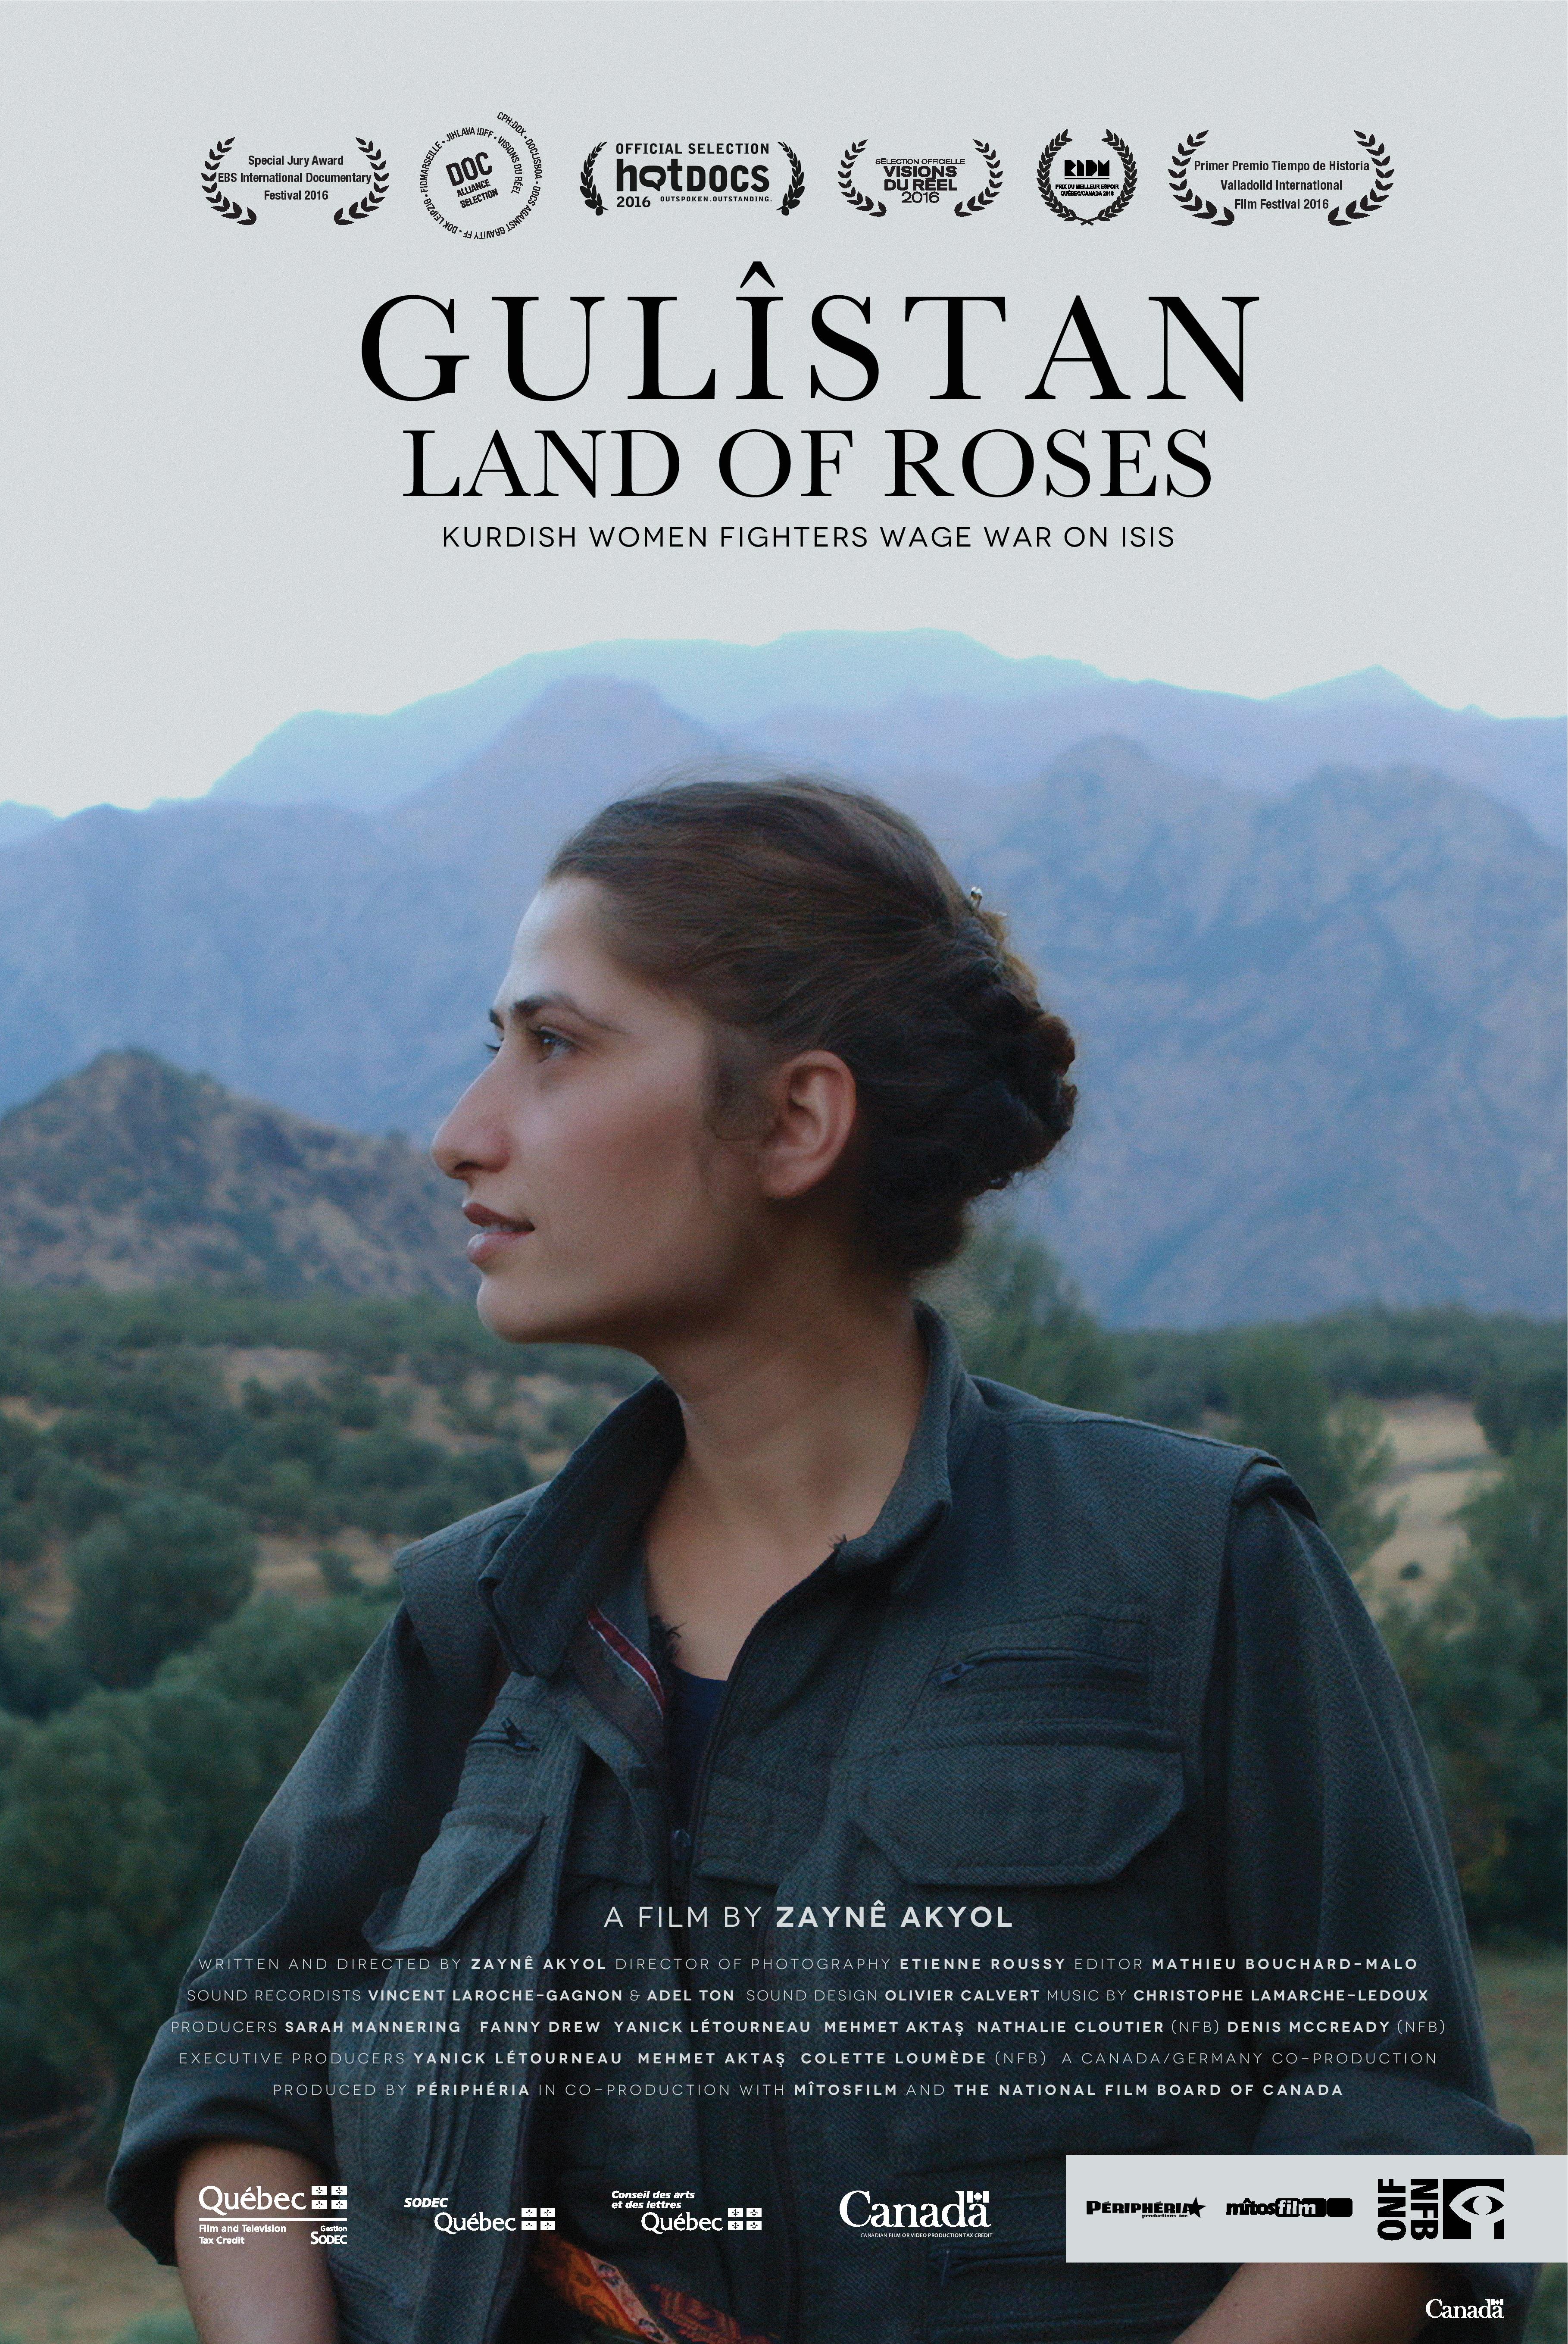 GULISTAN, LAND OF ROSES (STA)